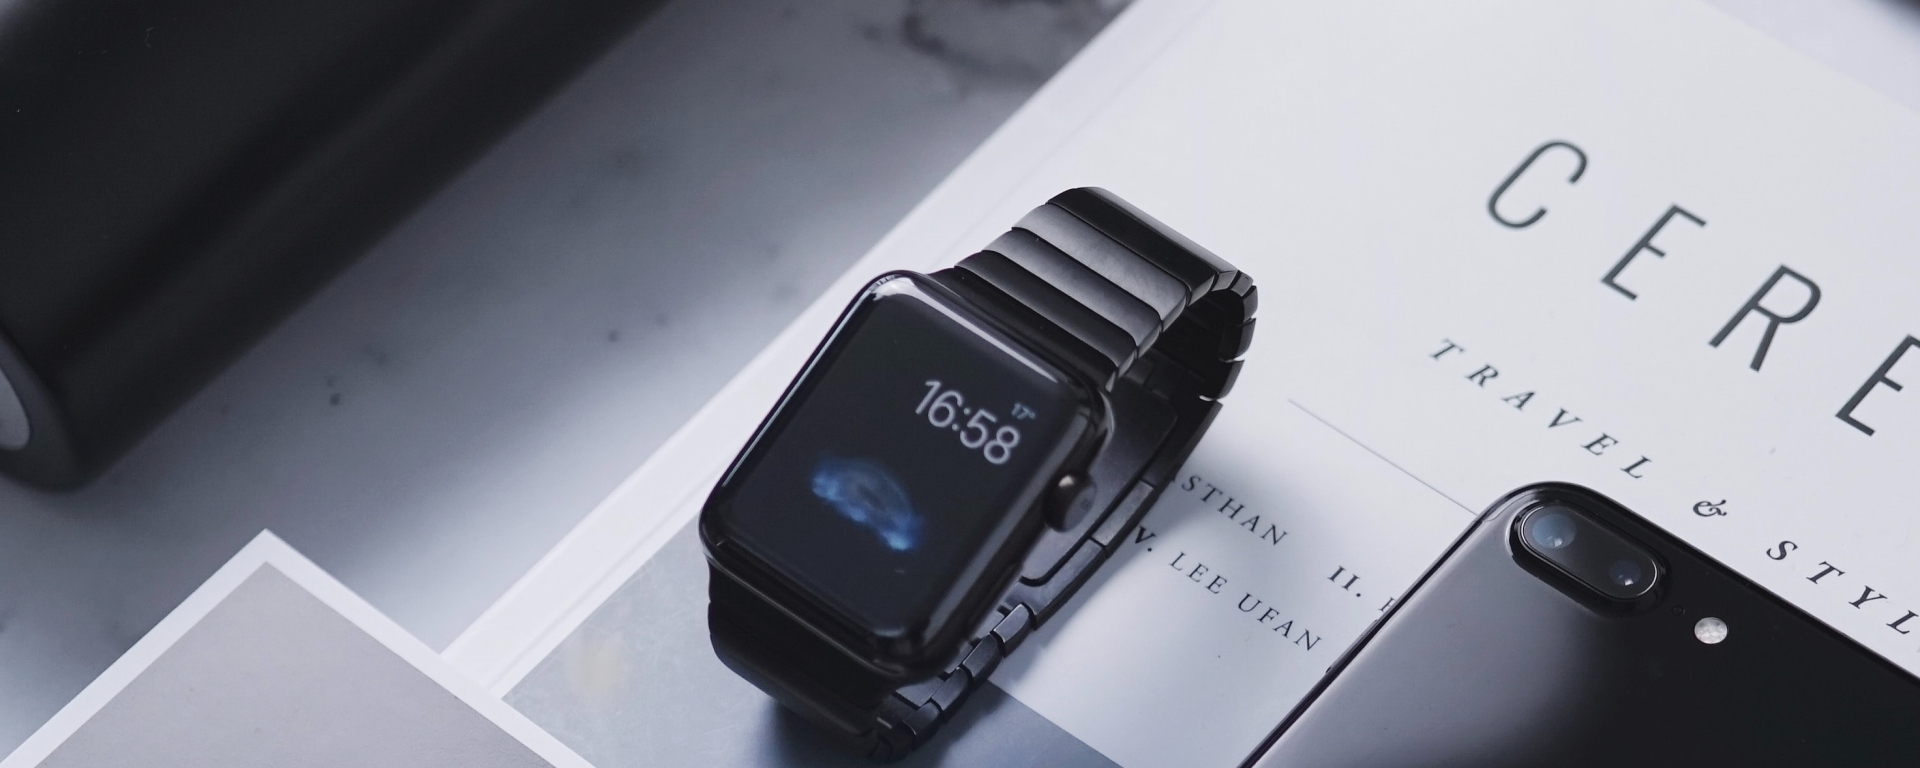 An image of a watch on top of a magazine, next to an iphone.